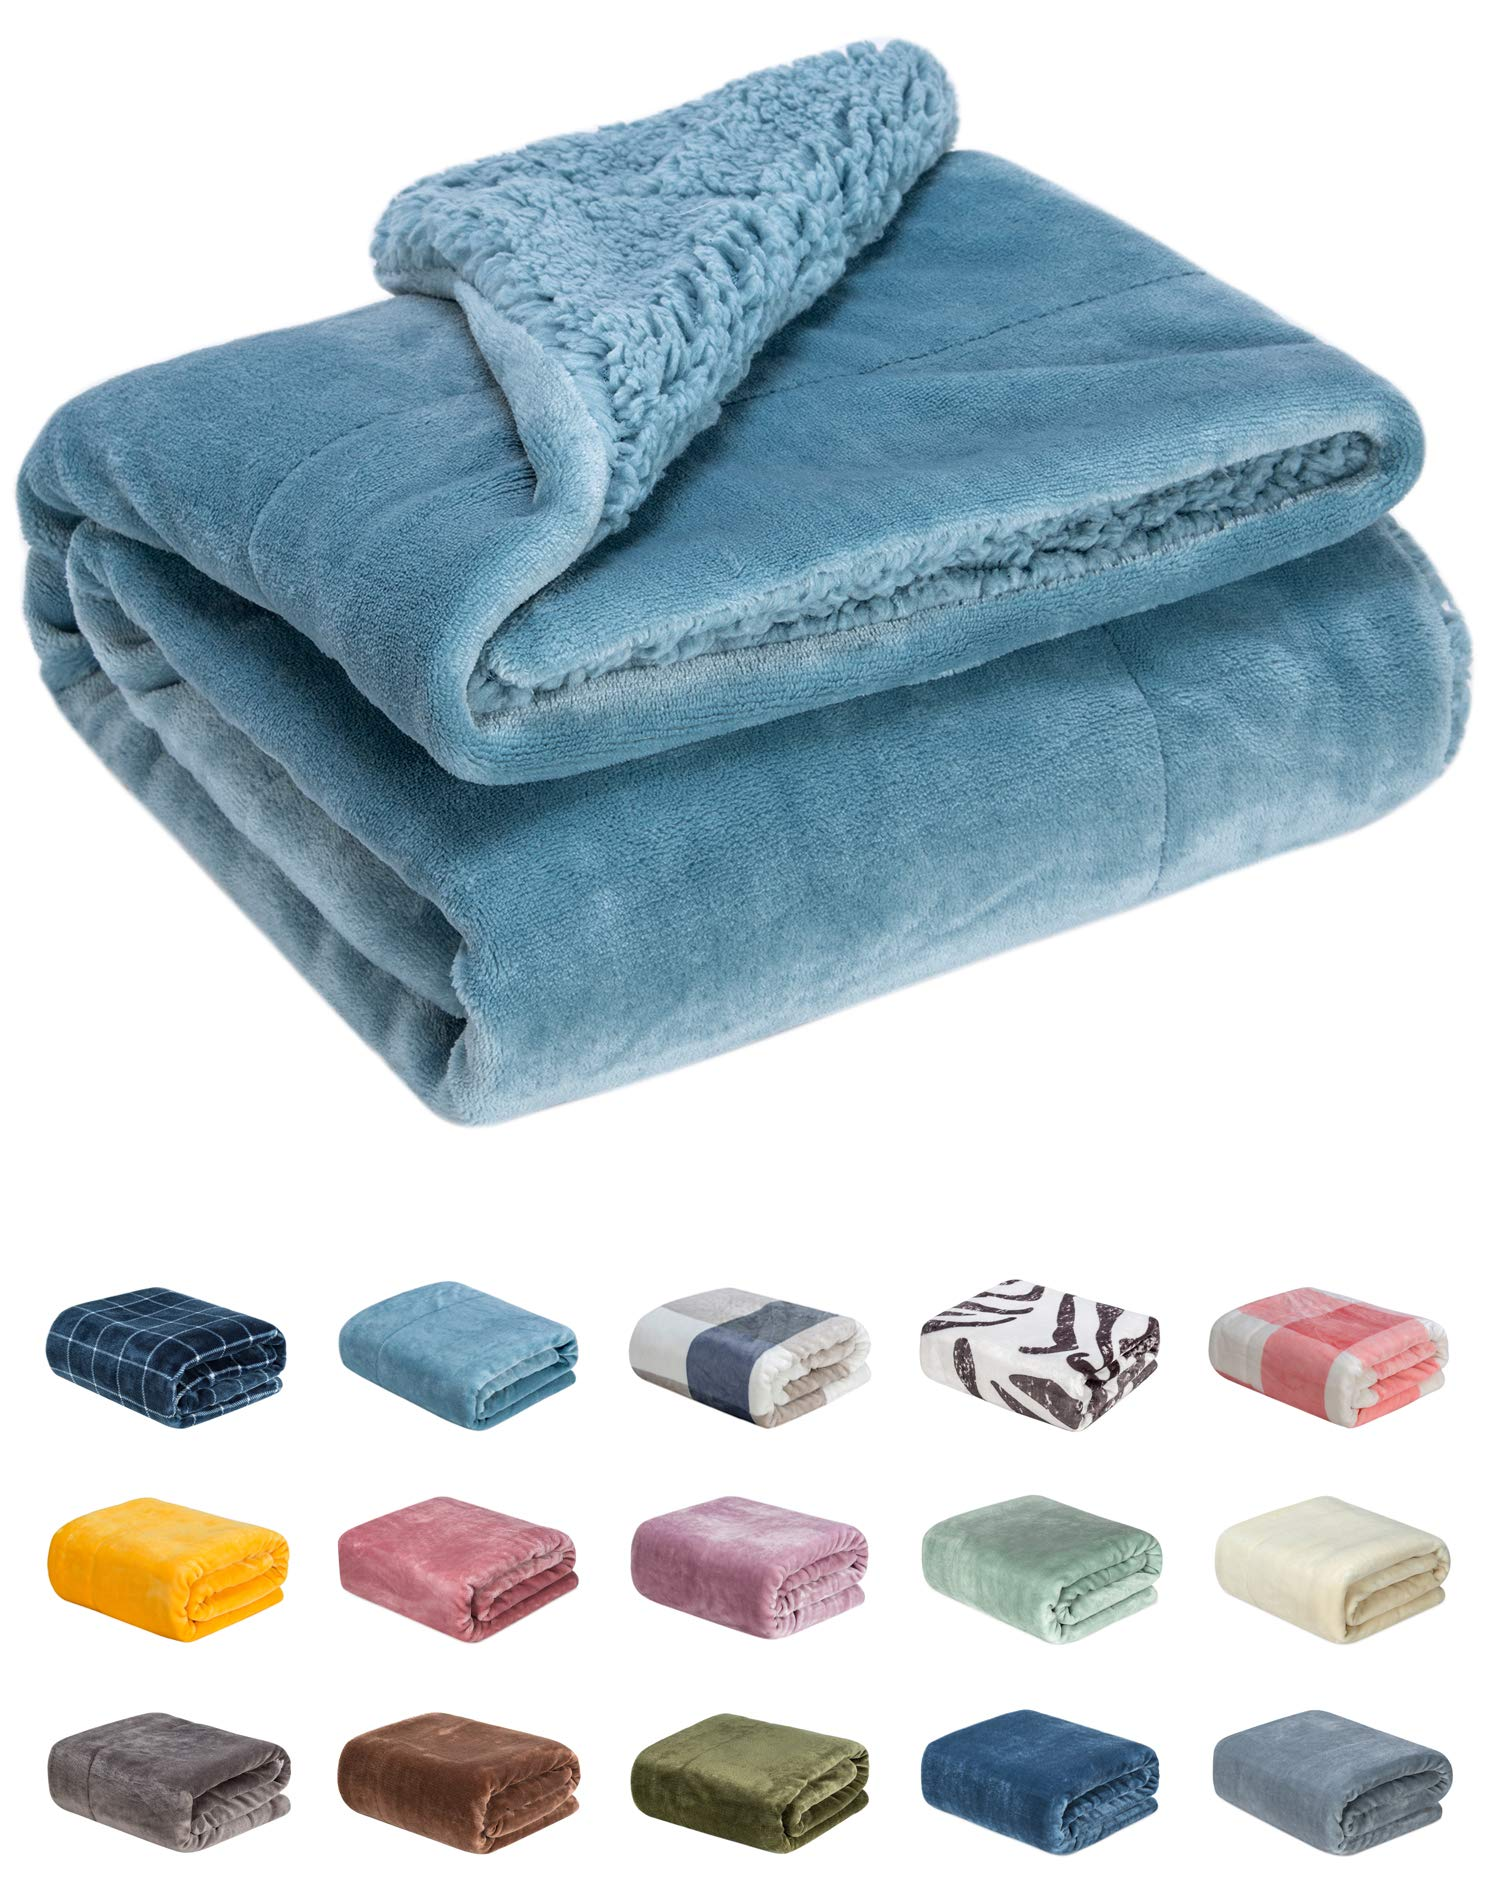 WONDER MIRACLE Fuzzy Sherpa Double Layers Super Thick and Warm Fleece Reversible Infant,Baby,Toddler,pet Blanket for Crib, Stroller, Travel, Couch and Bed (40Wx50L, S-Lake Blue)